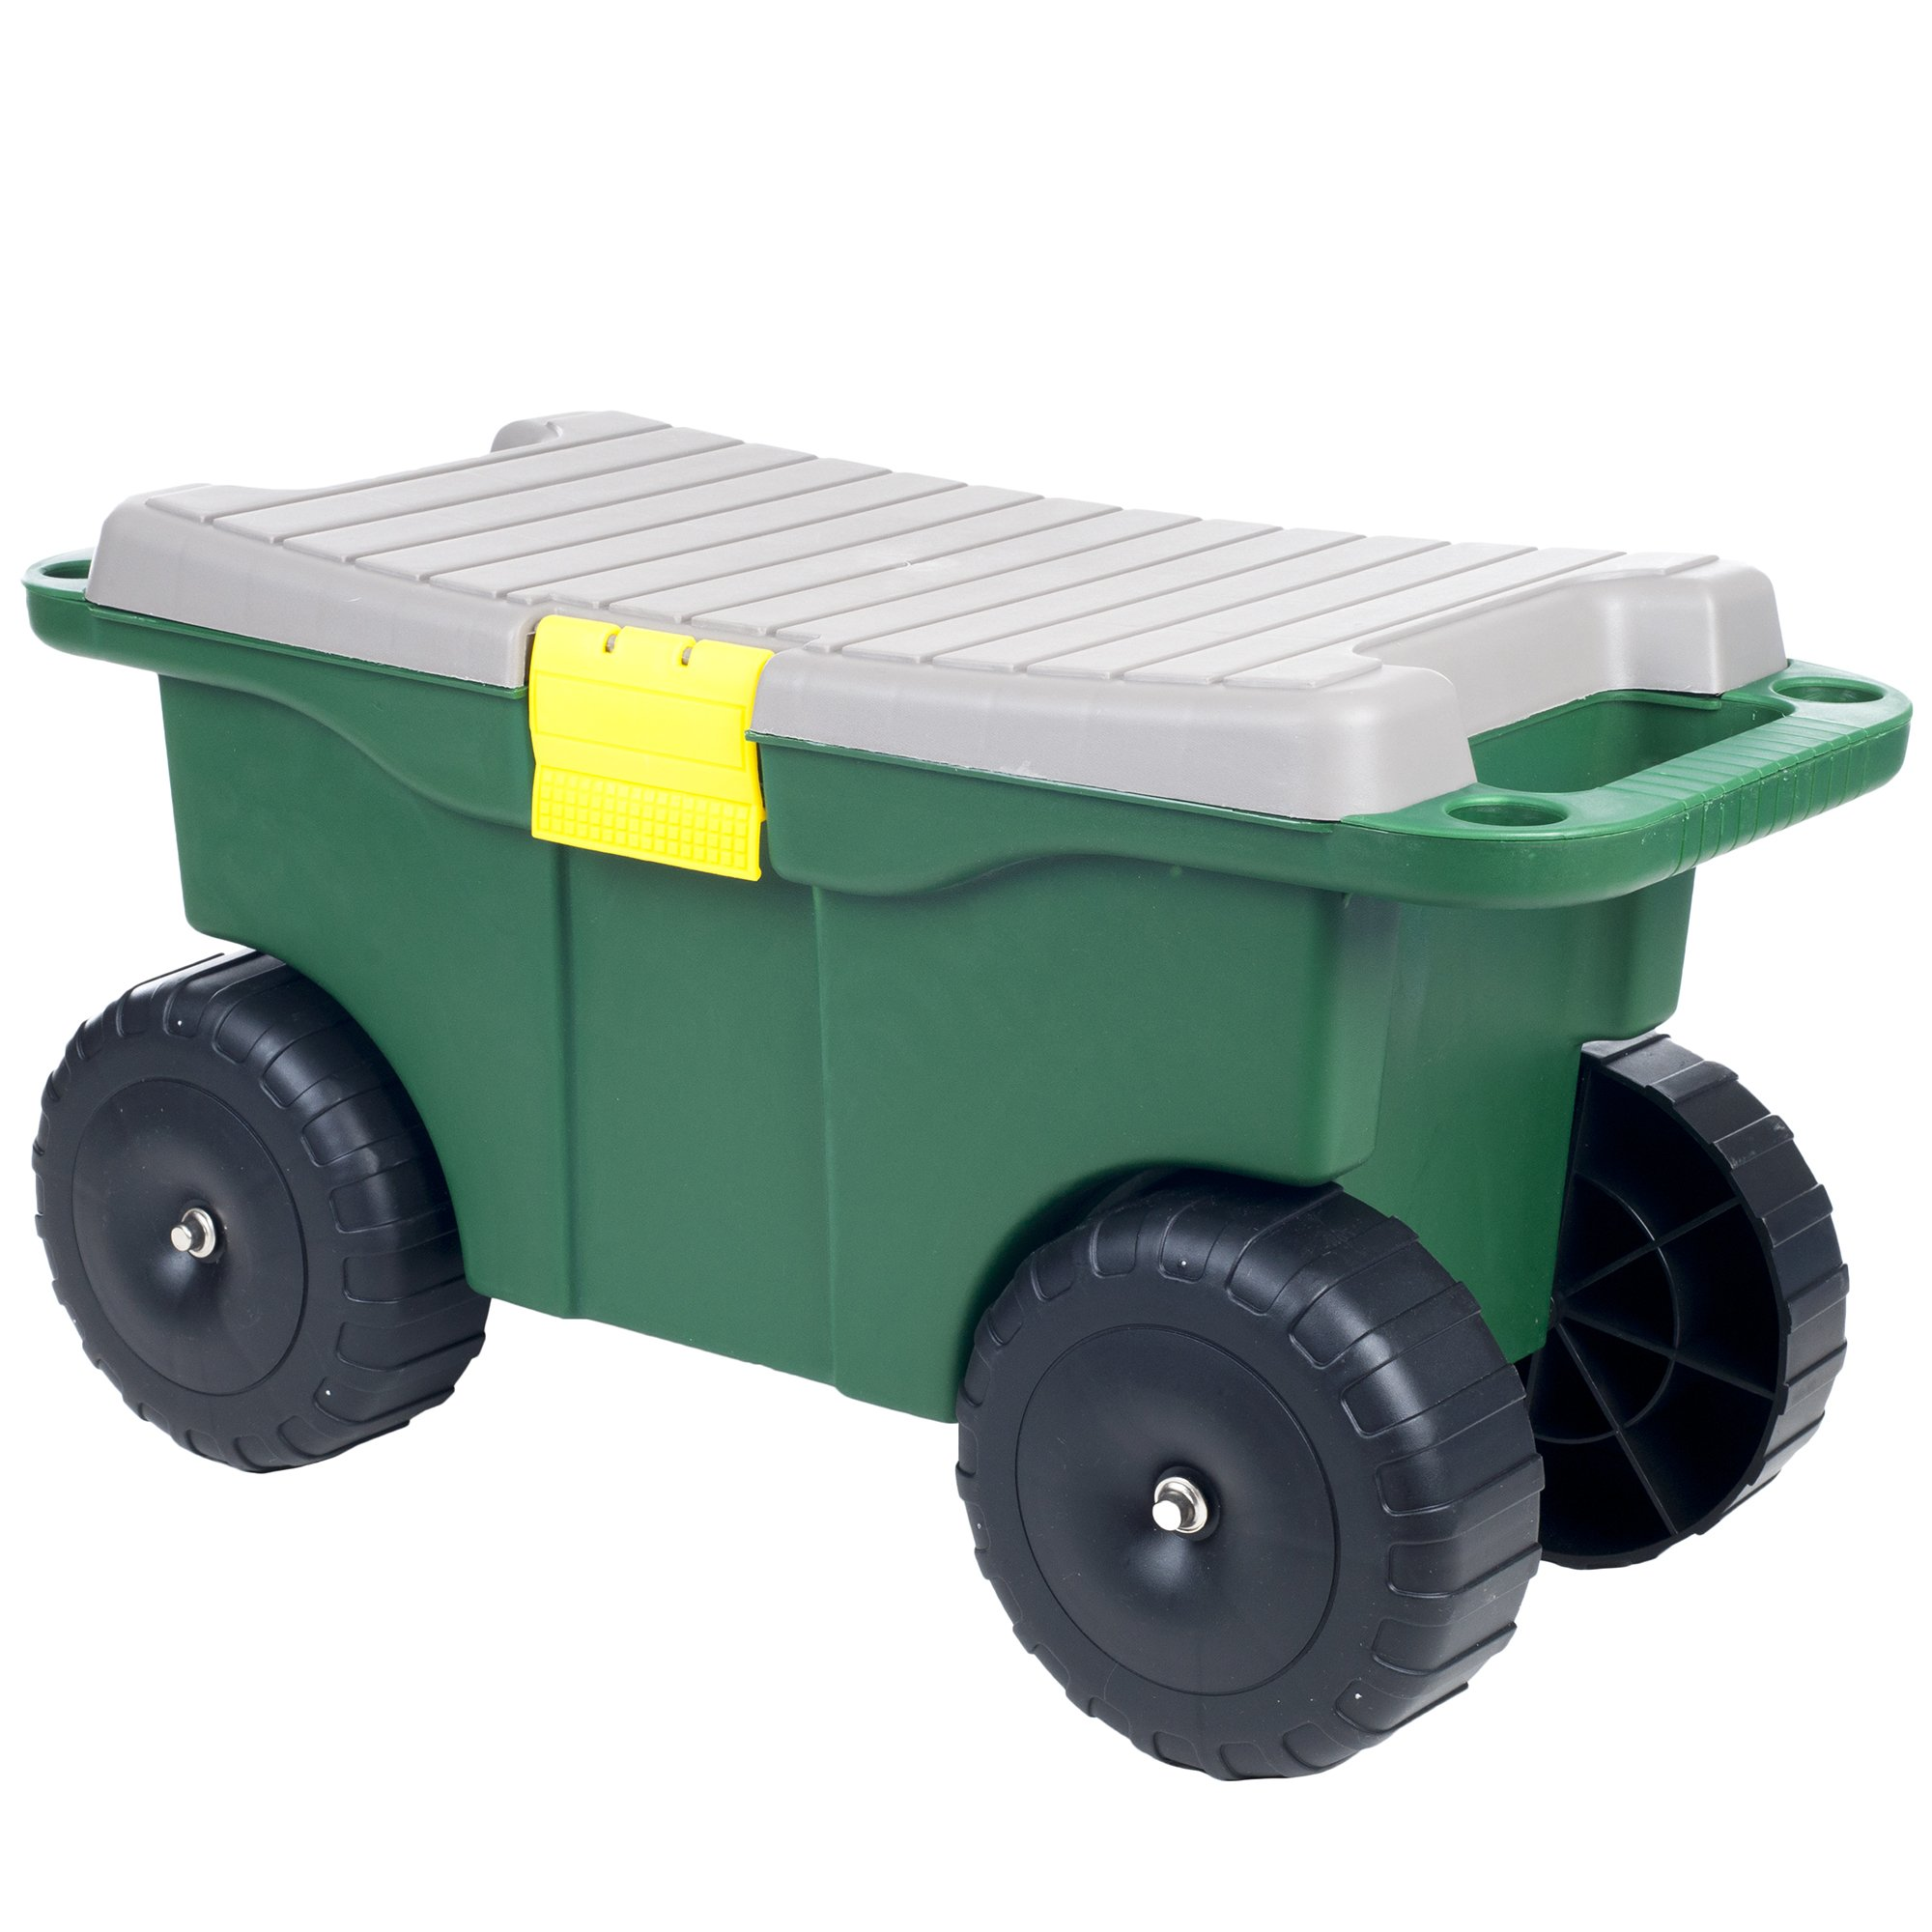 Pure Garden 75-MJ2011 20'' Plastic Garden Storage Cart & Scooter